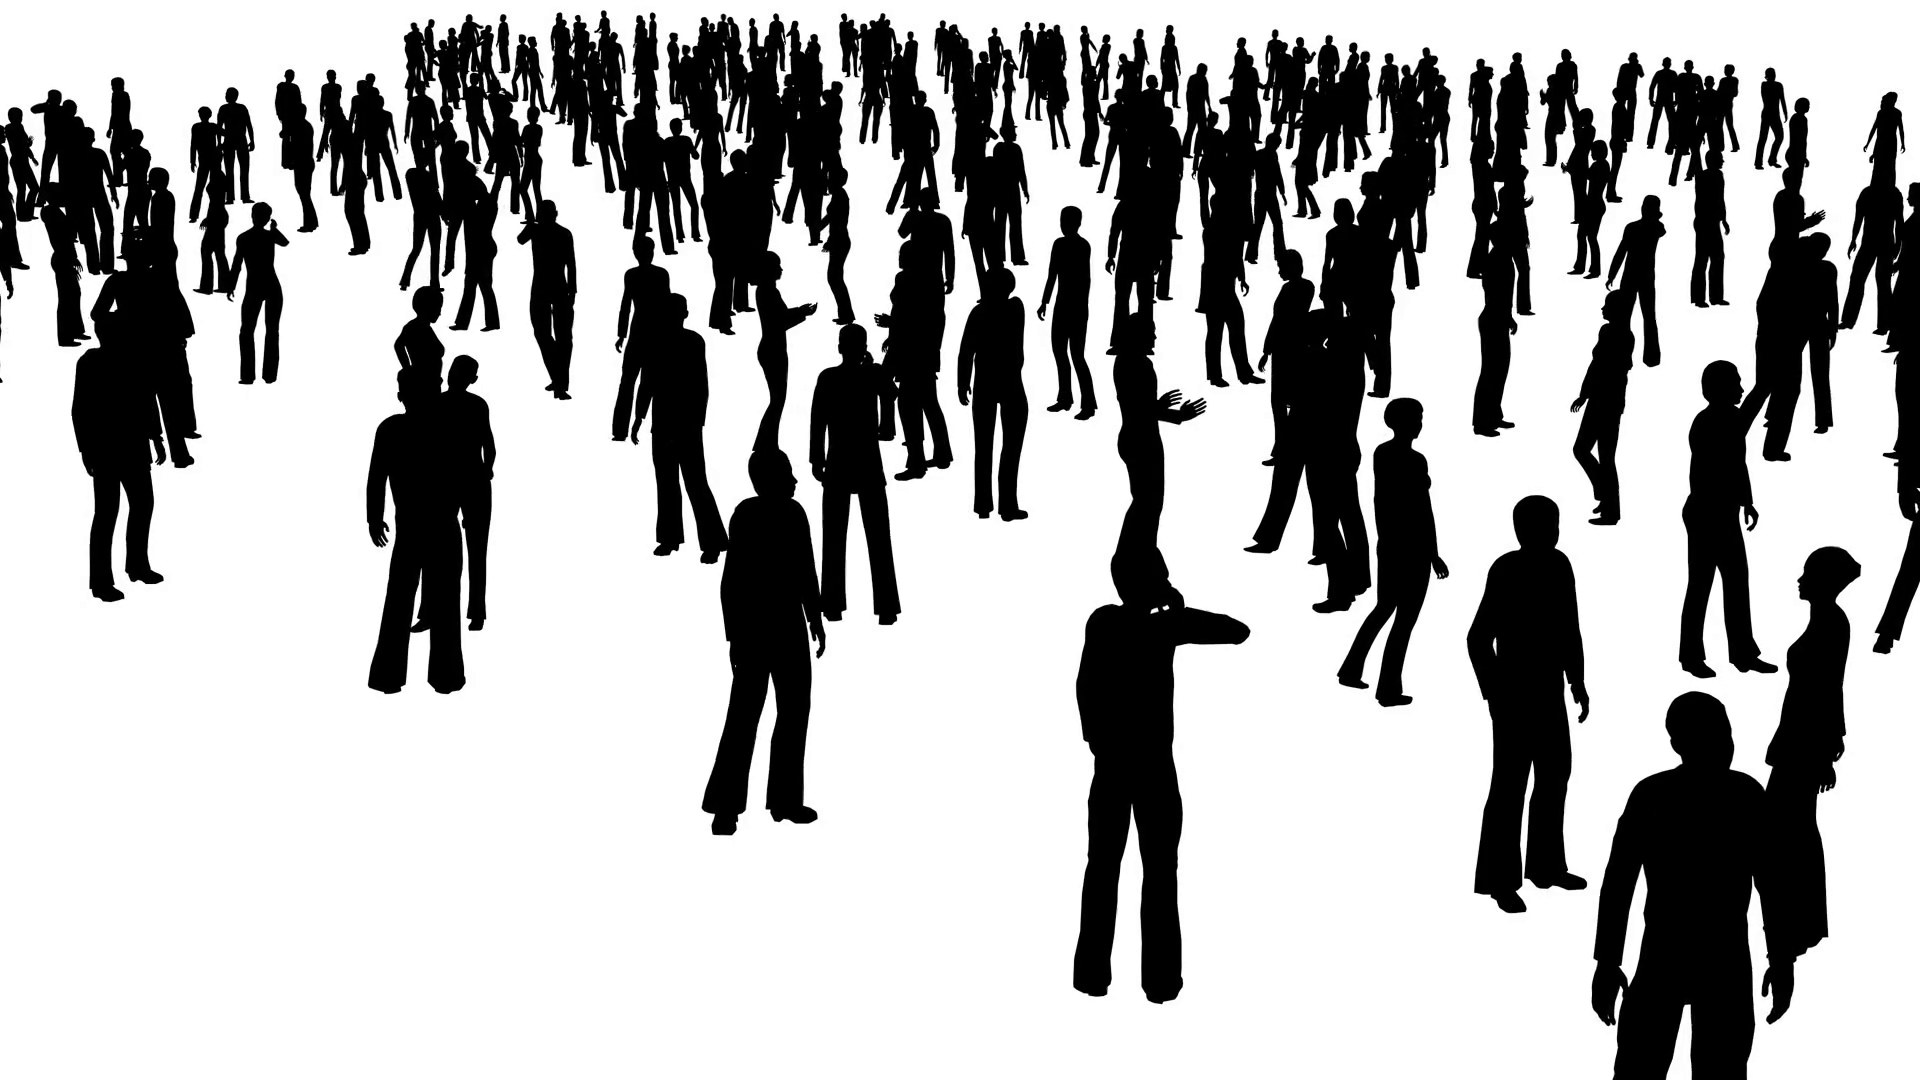 1920x1080 4k The Crowd Of Stand People, All In Silhouette, On A White